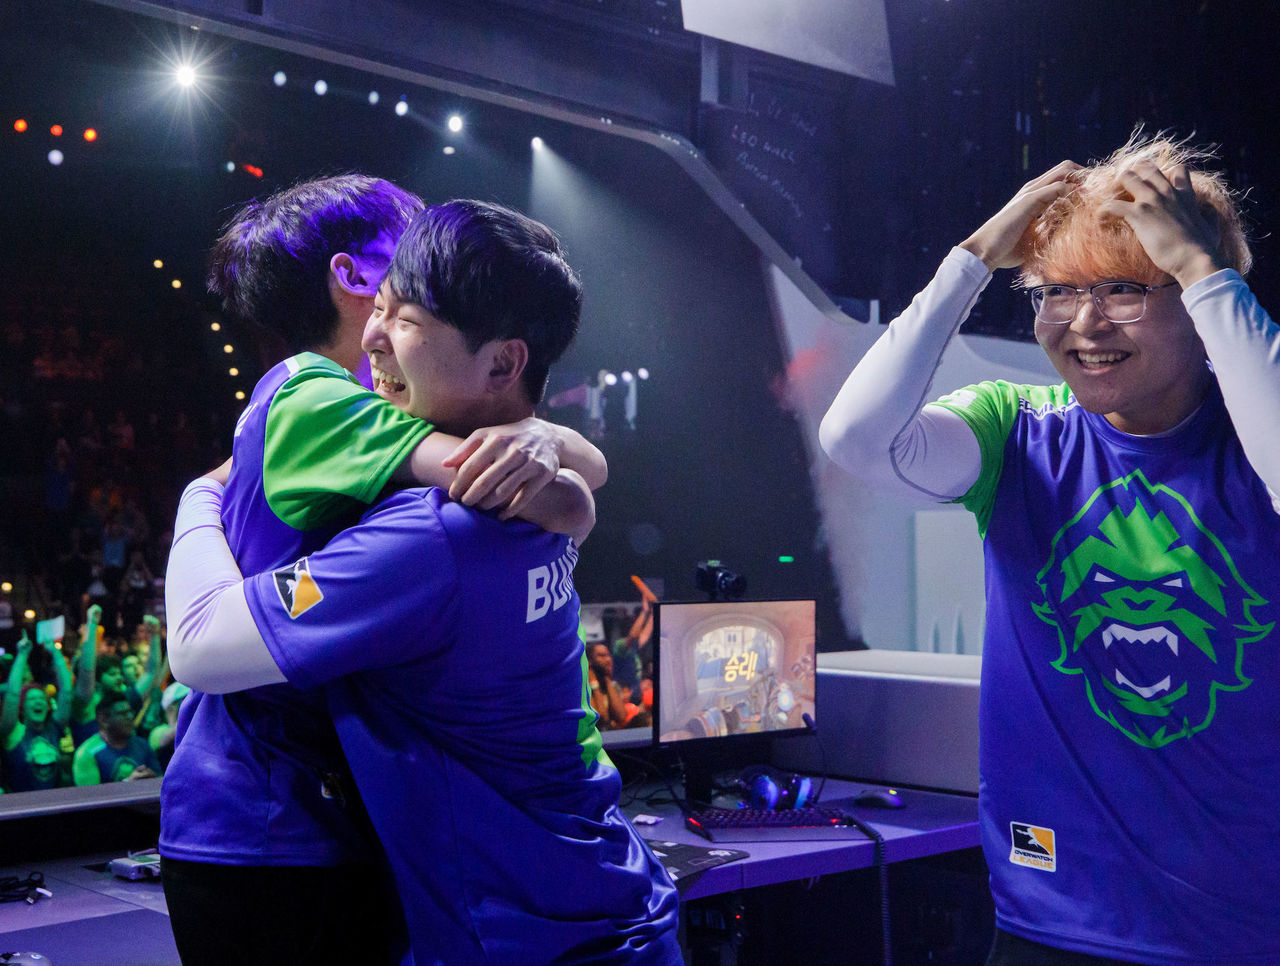 theScore esports Daily (March 25): Vancouver Titans win OWL Stage 1 championship, n0thing leaves compLexity and Vici Gaming wins Dota 2 DreamLeague Major